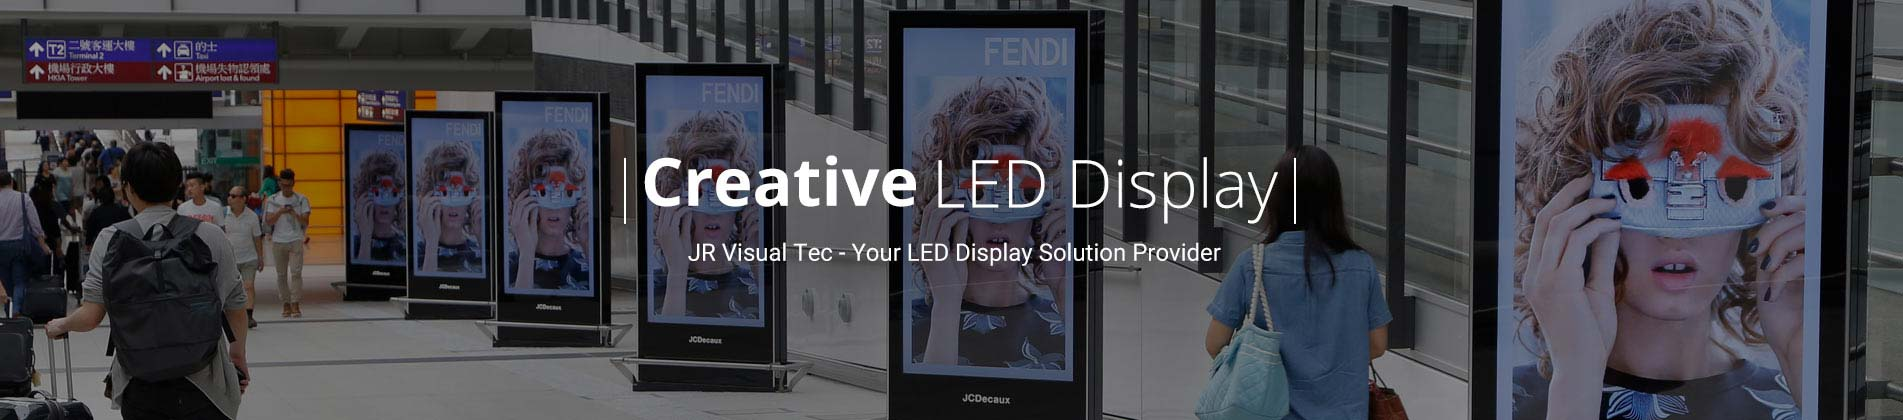 creative led display